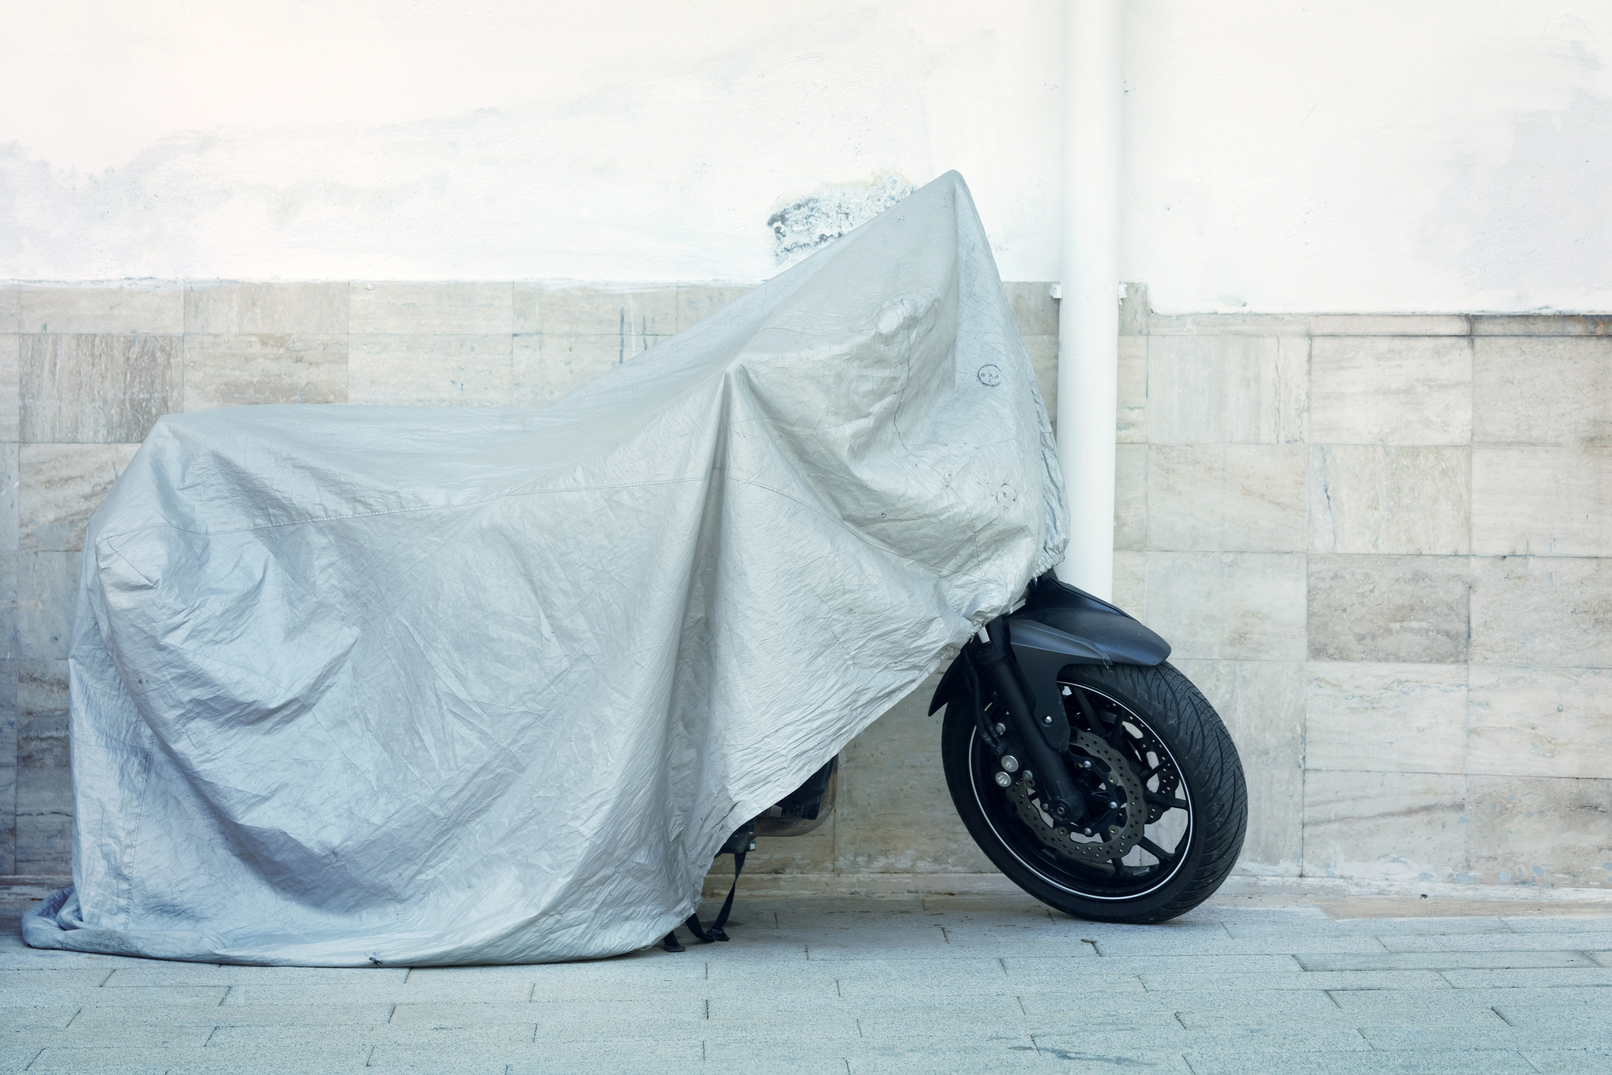 Image result for officer search under tarp